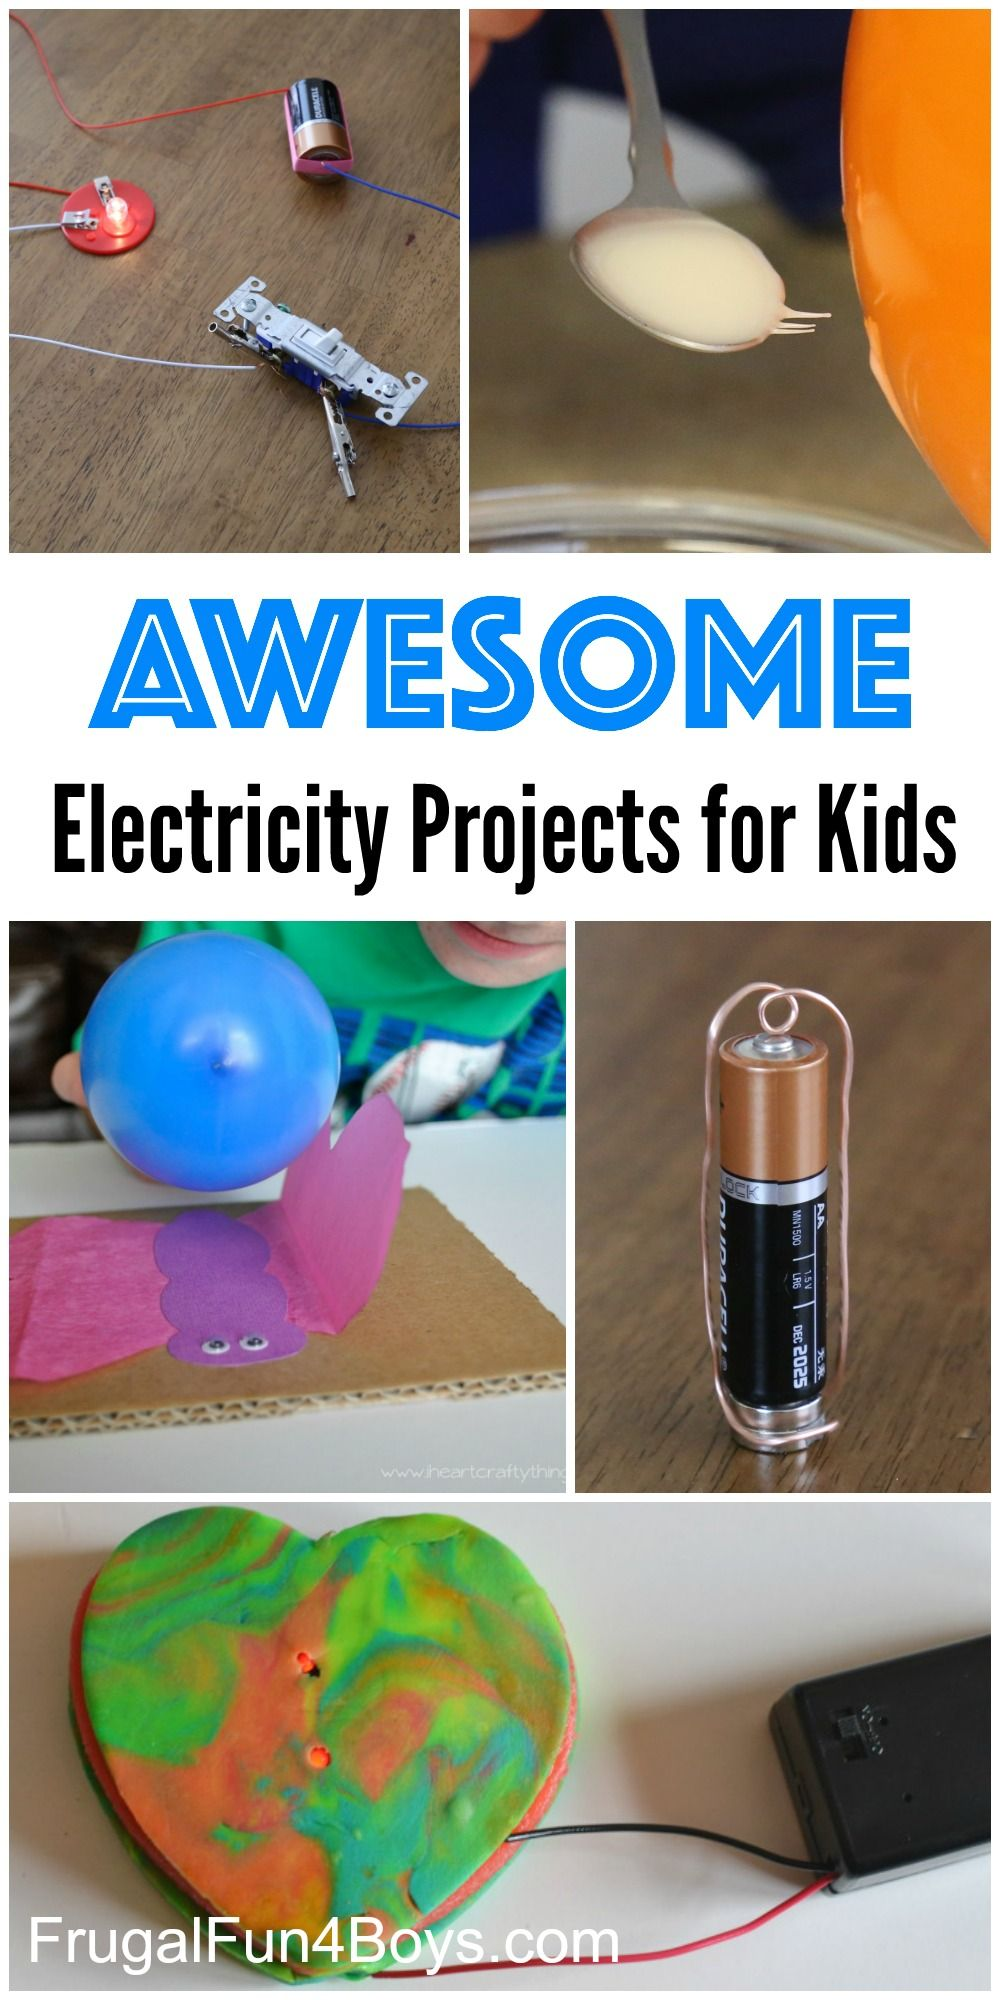 Simple Science Projects Over Circuit Modern Design Of Wiring Diagram 10 Awesome Electricity For Kids Frugal Fun Boys And Rh Pinterest Com Light Bulb Battery Project